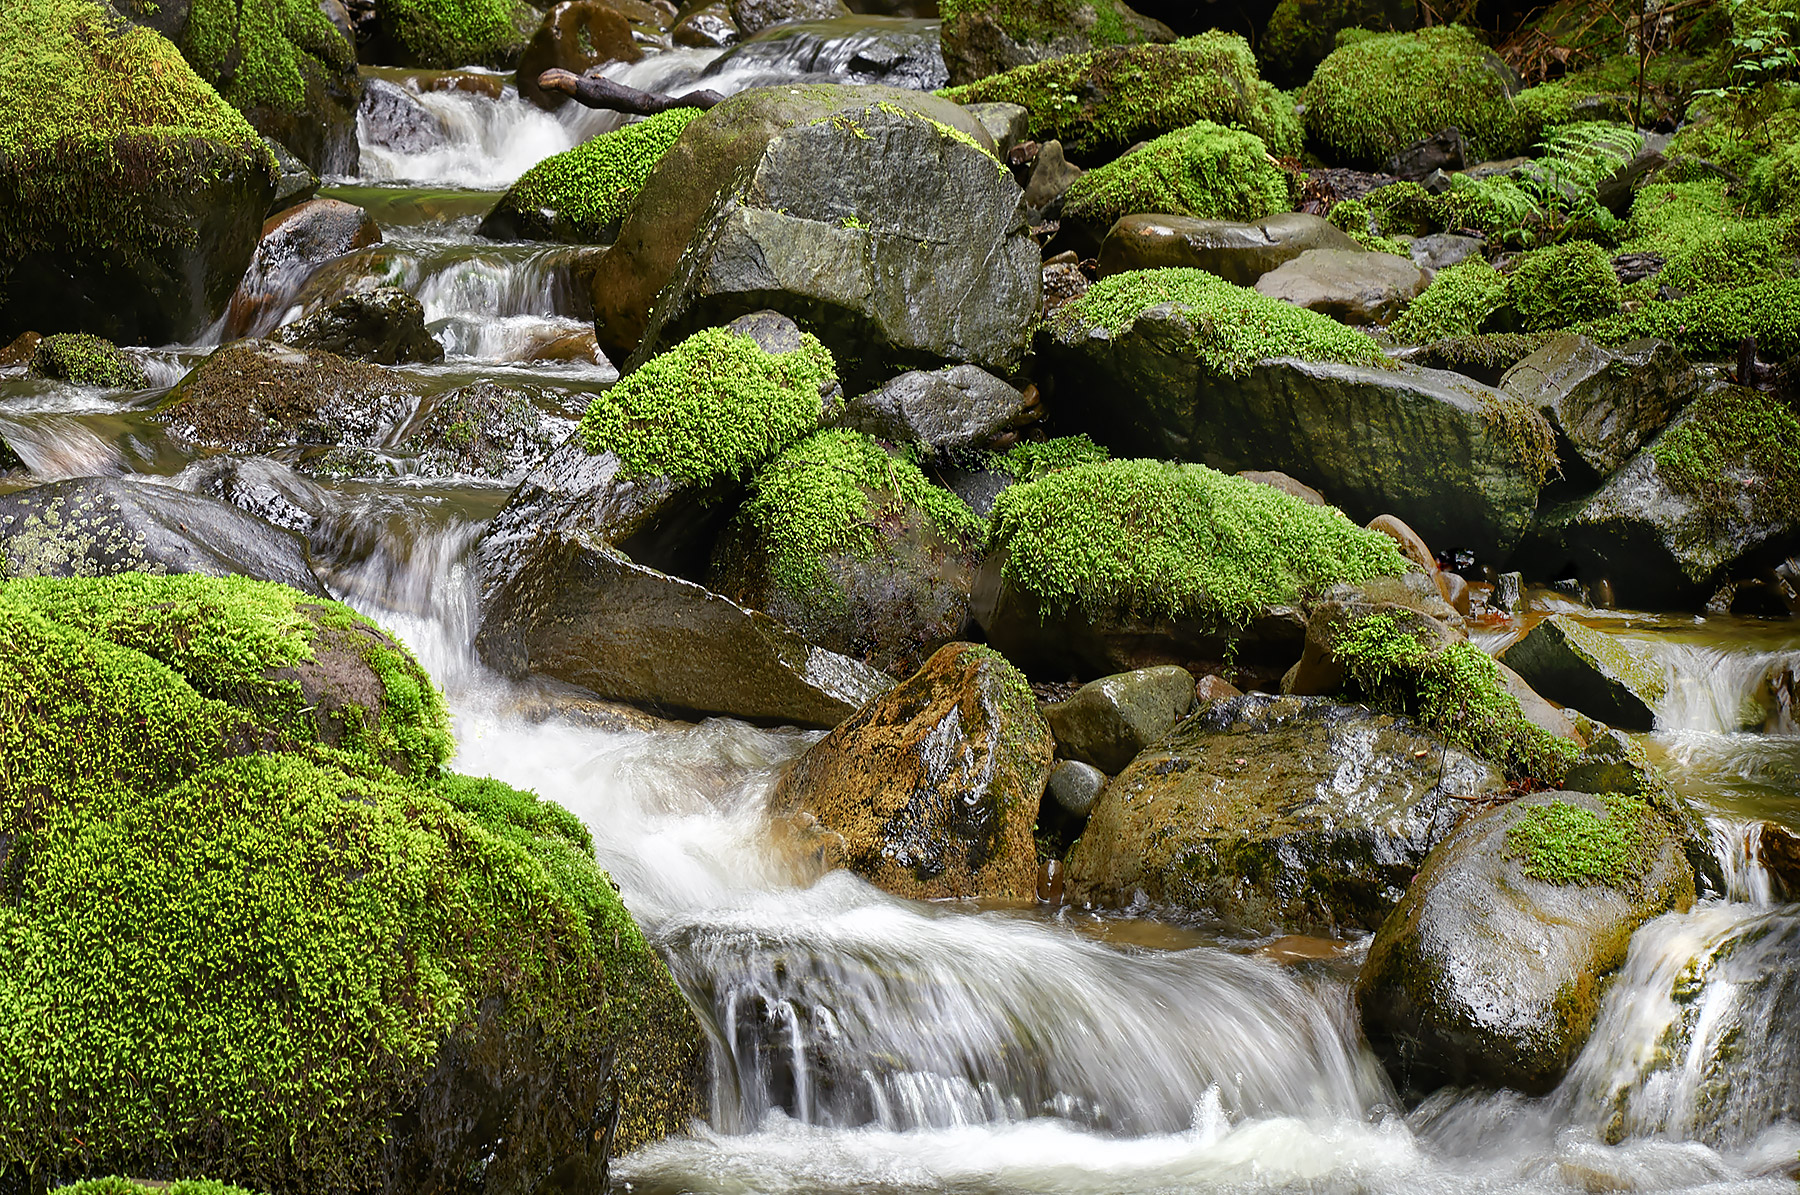 Salt Spring Island stream during a light spring rain ©johncameron.ca